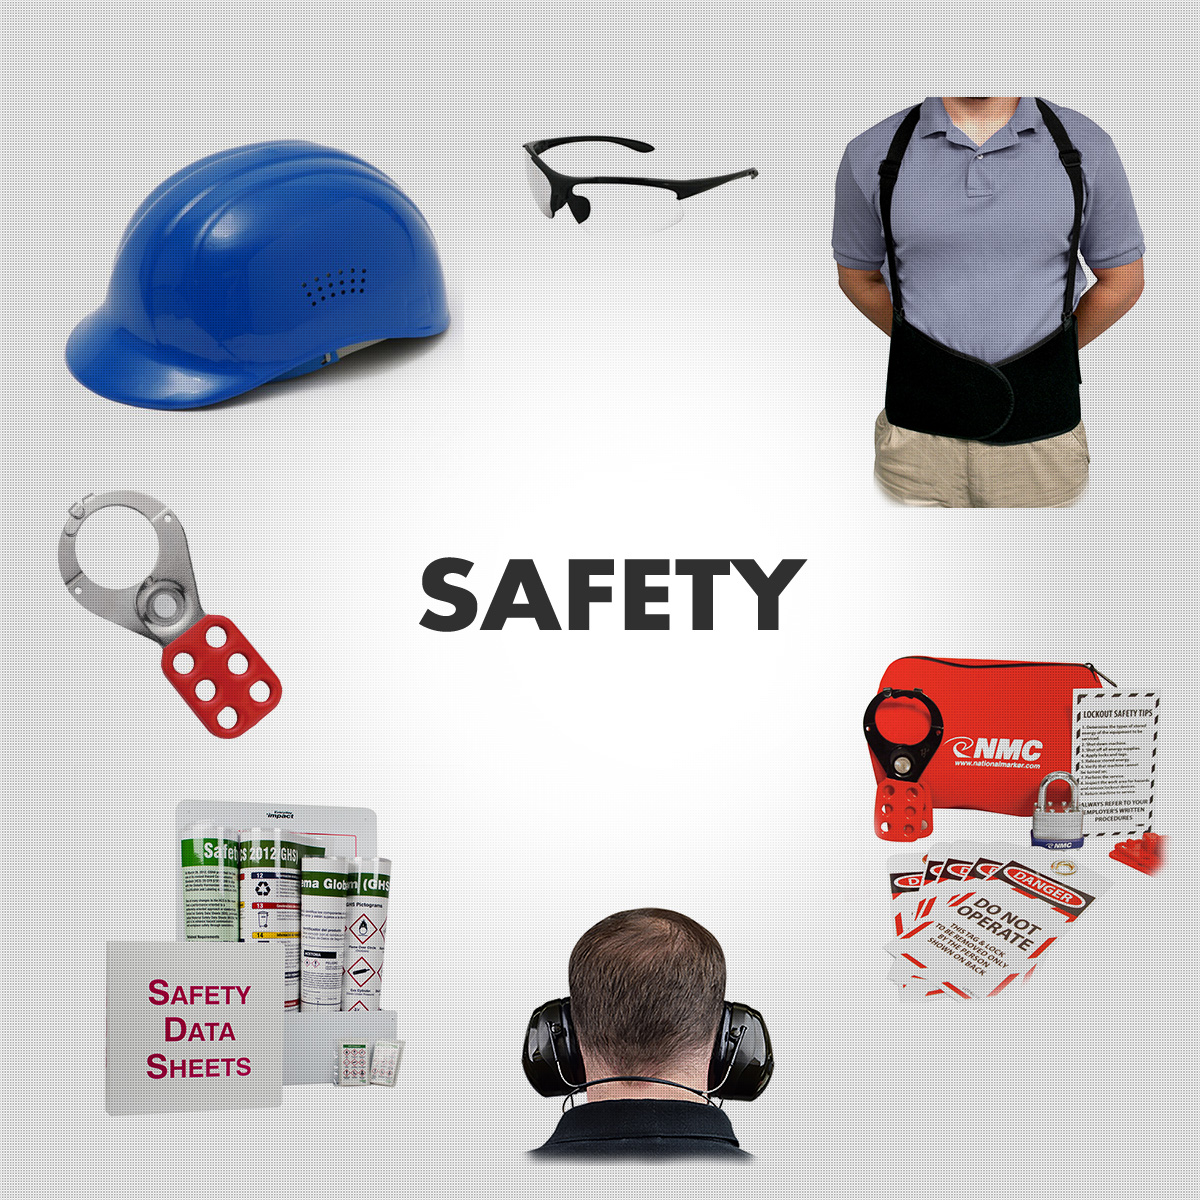 Safety Equipment - Signs, Vests, Eye, Ear, Back & Head Protection, Etc.